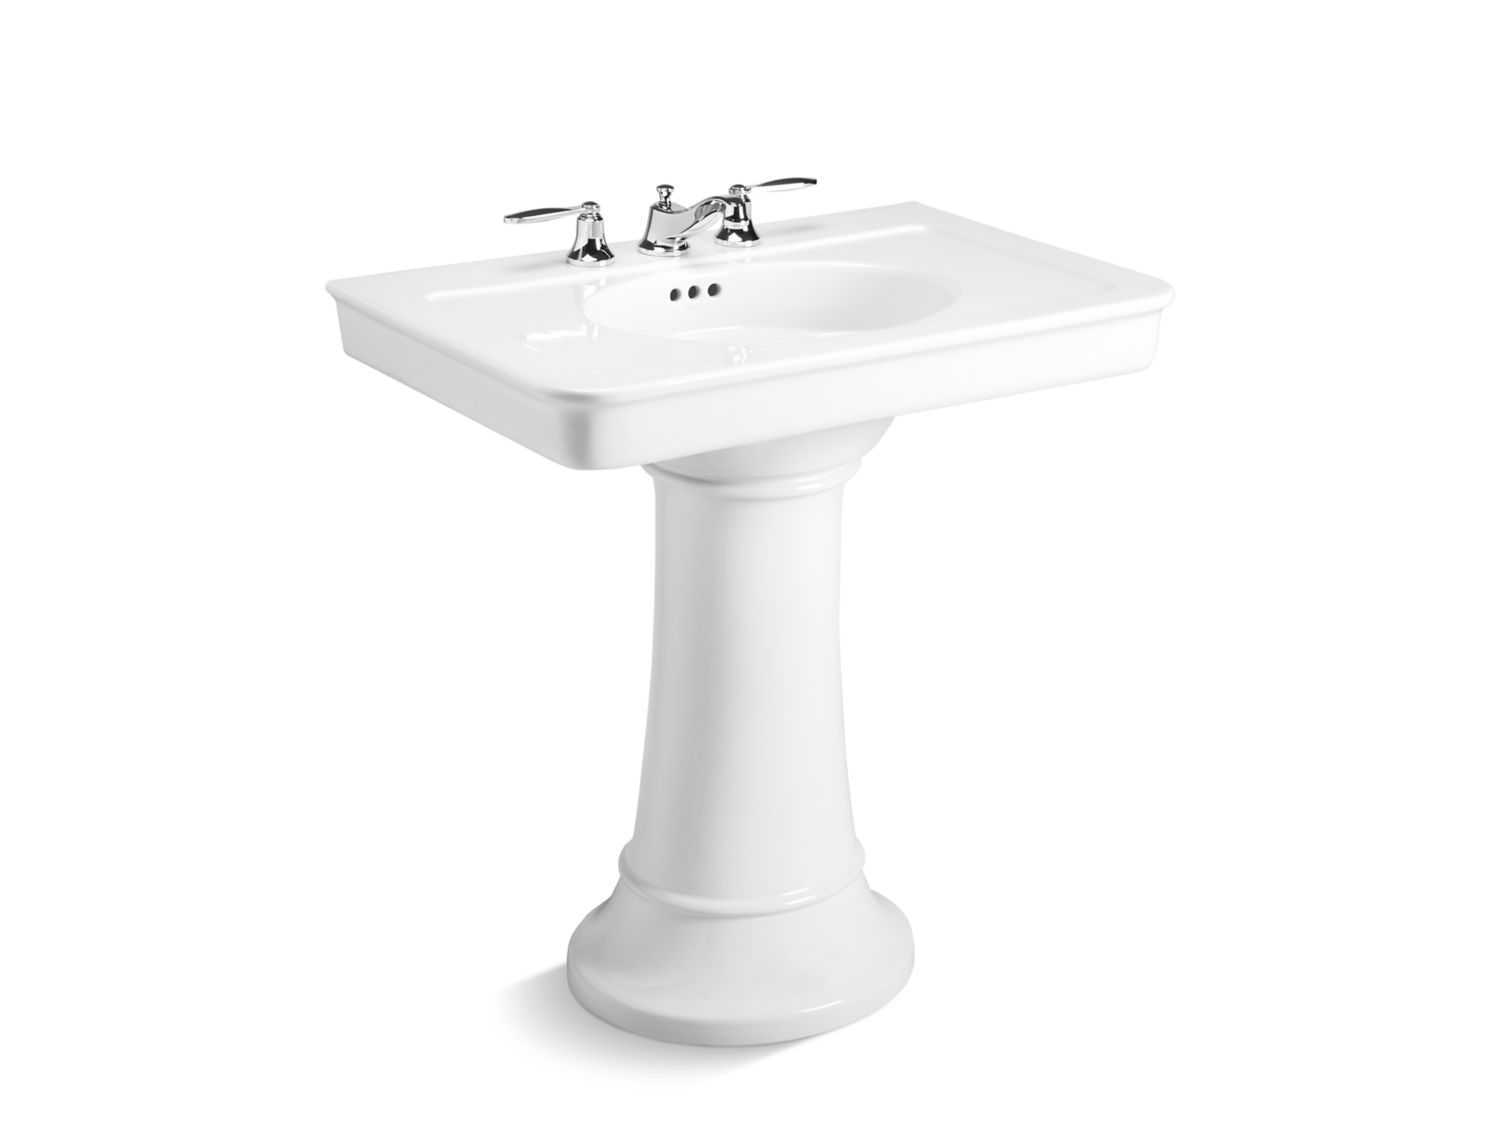 kallista bathroom sinks tuxedo by barbara barry pedestal sink p72037 00 13296